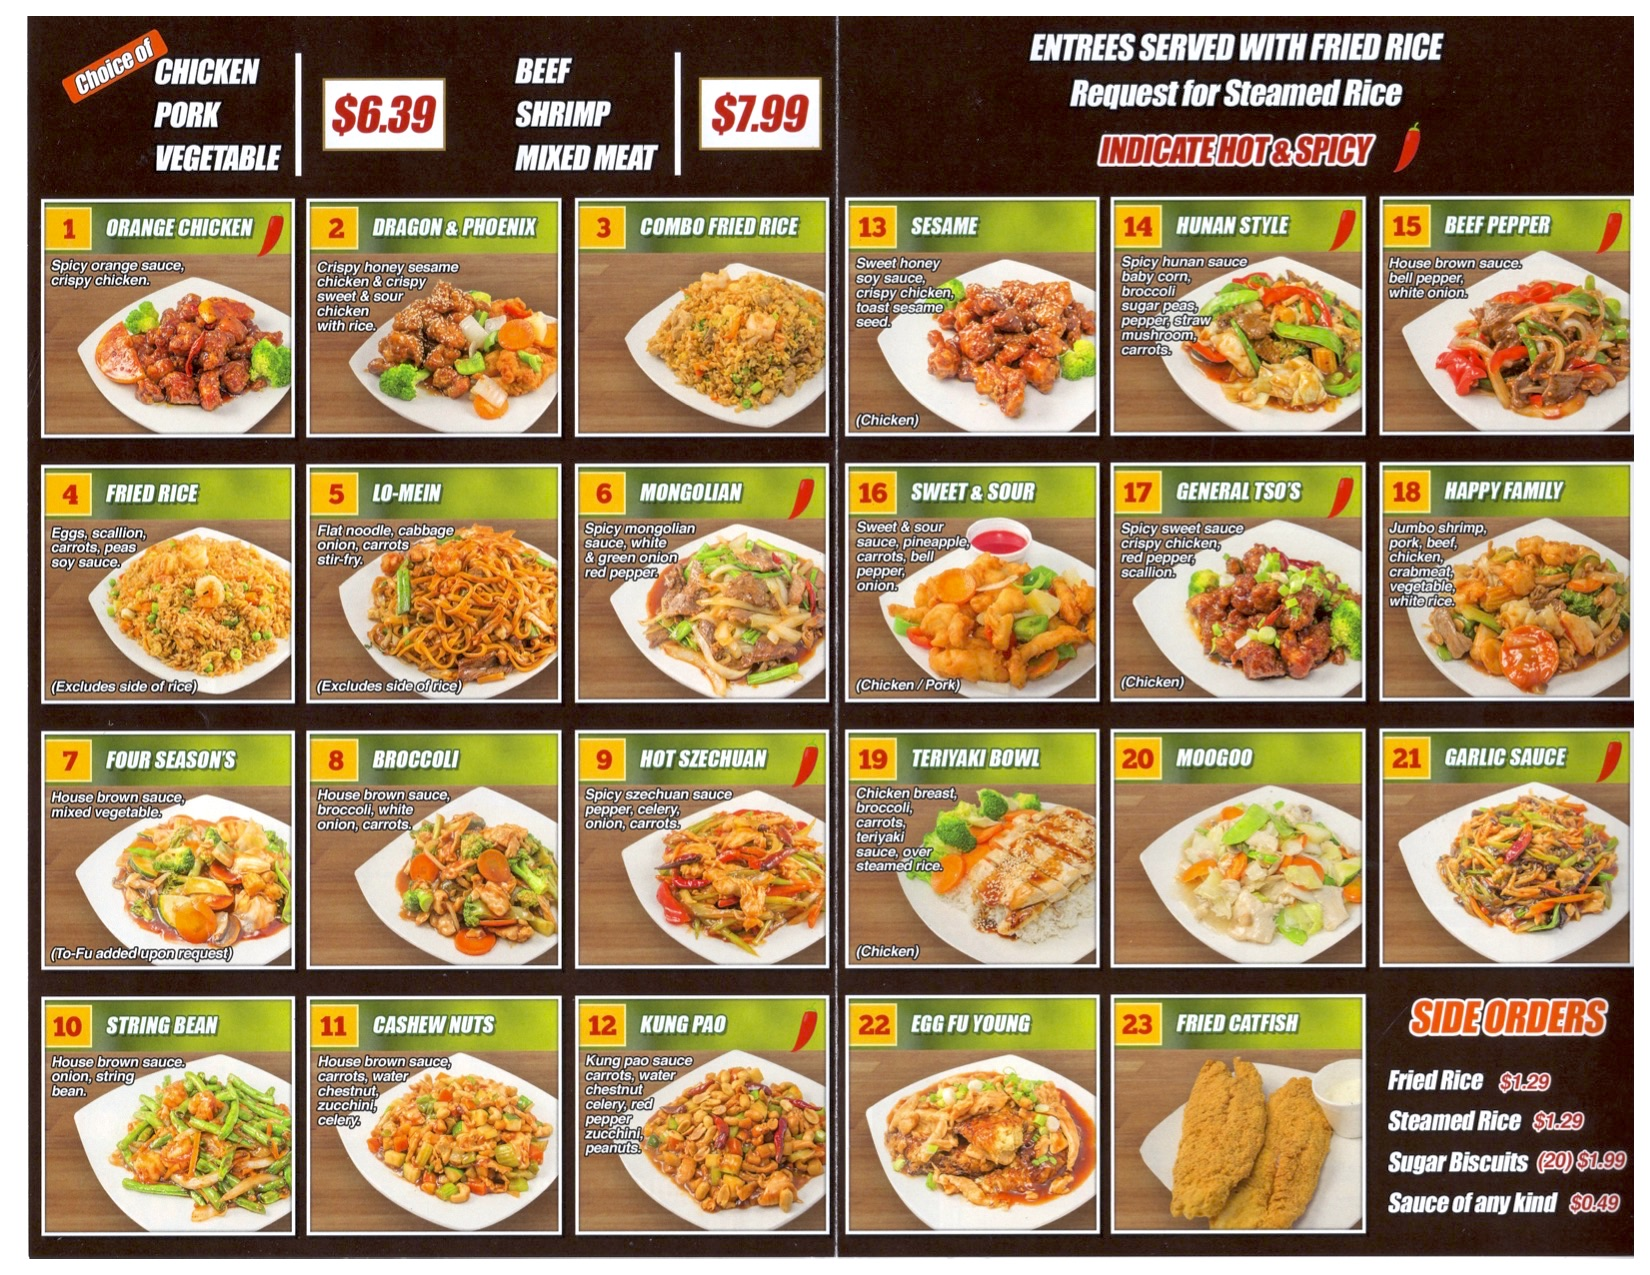 Orange Chicken Menu.jpg